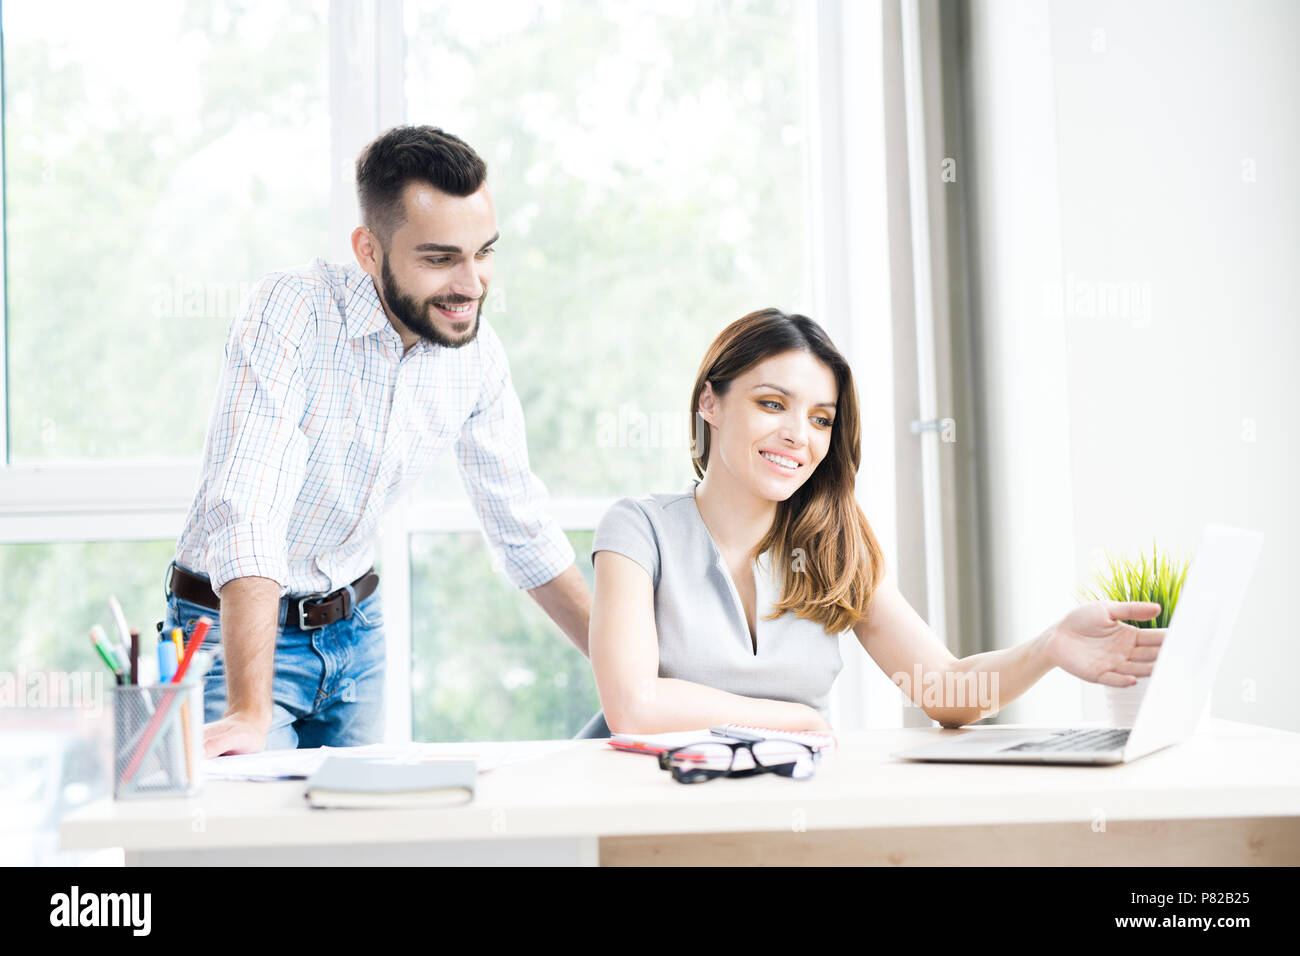 Two Modern Business People in Office - Stock Image